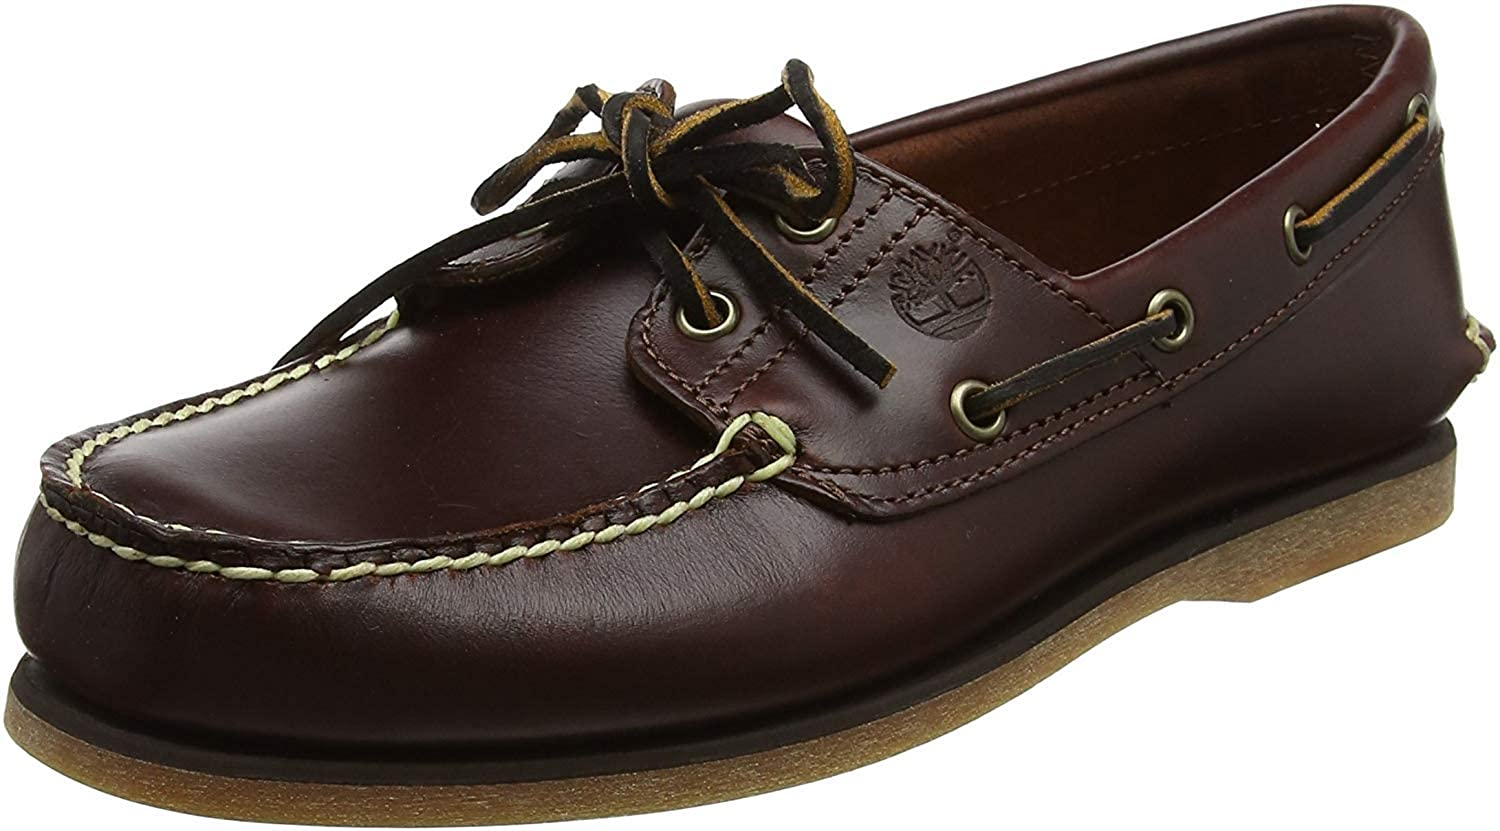 Timberland Classic Boat 2 Eyerubber Chaos W/Croissant Mystic, Náuticos para Hombre